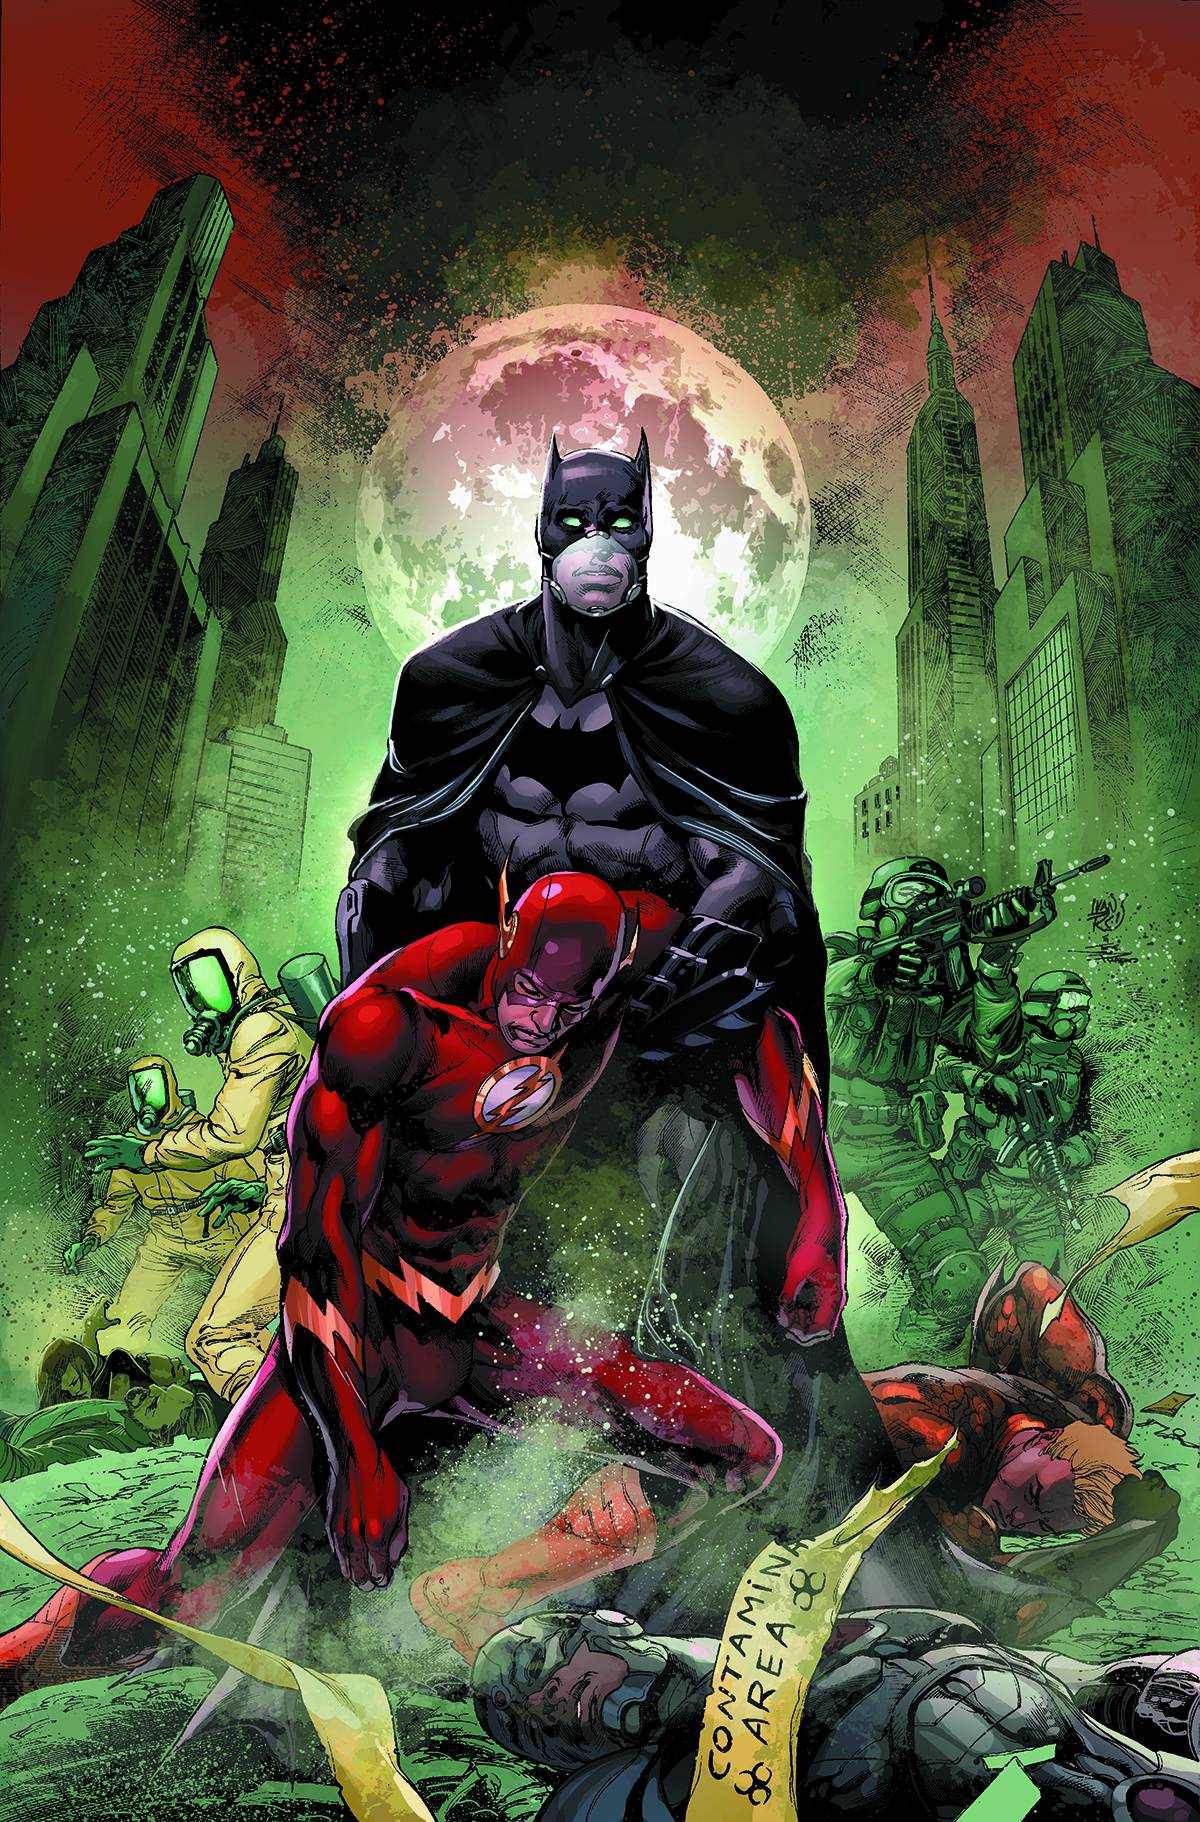 Dc Comics Justice League : Just what is a patient zero anyway